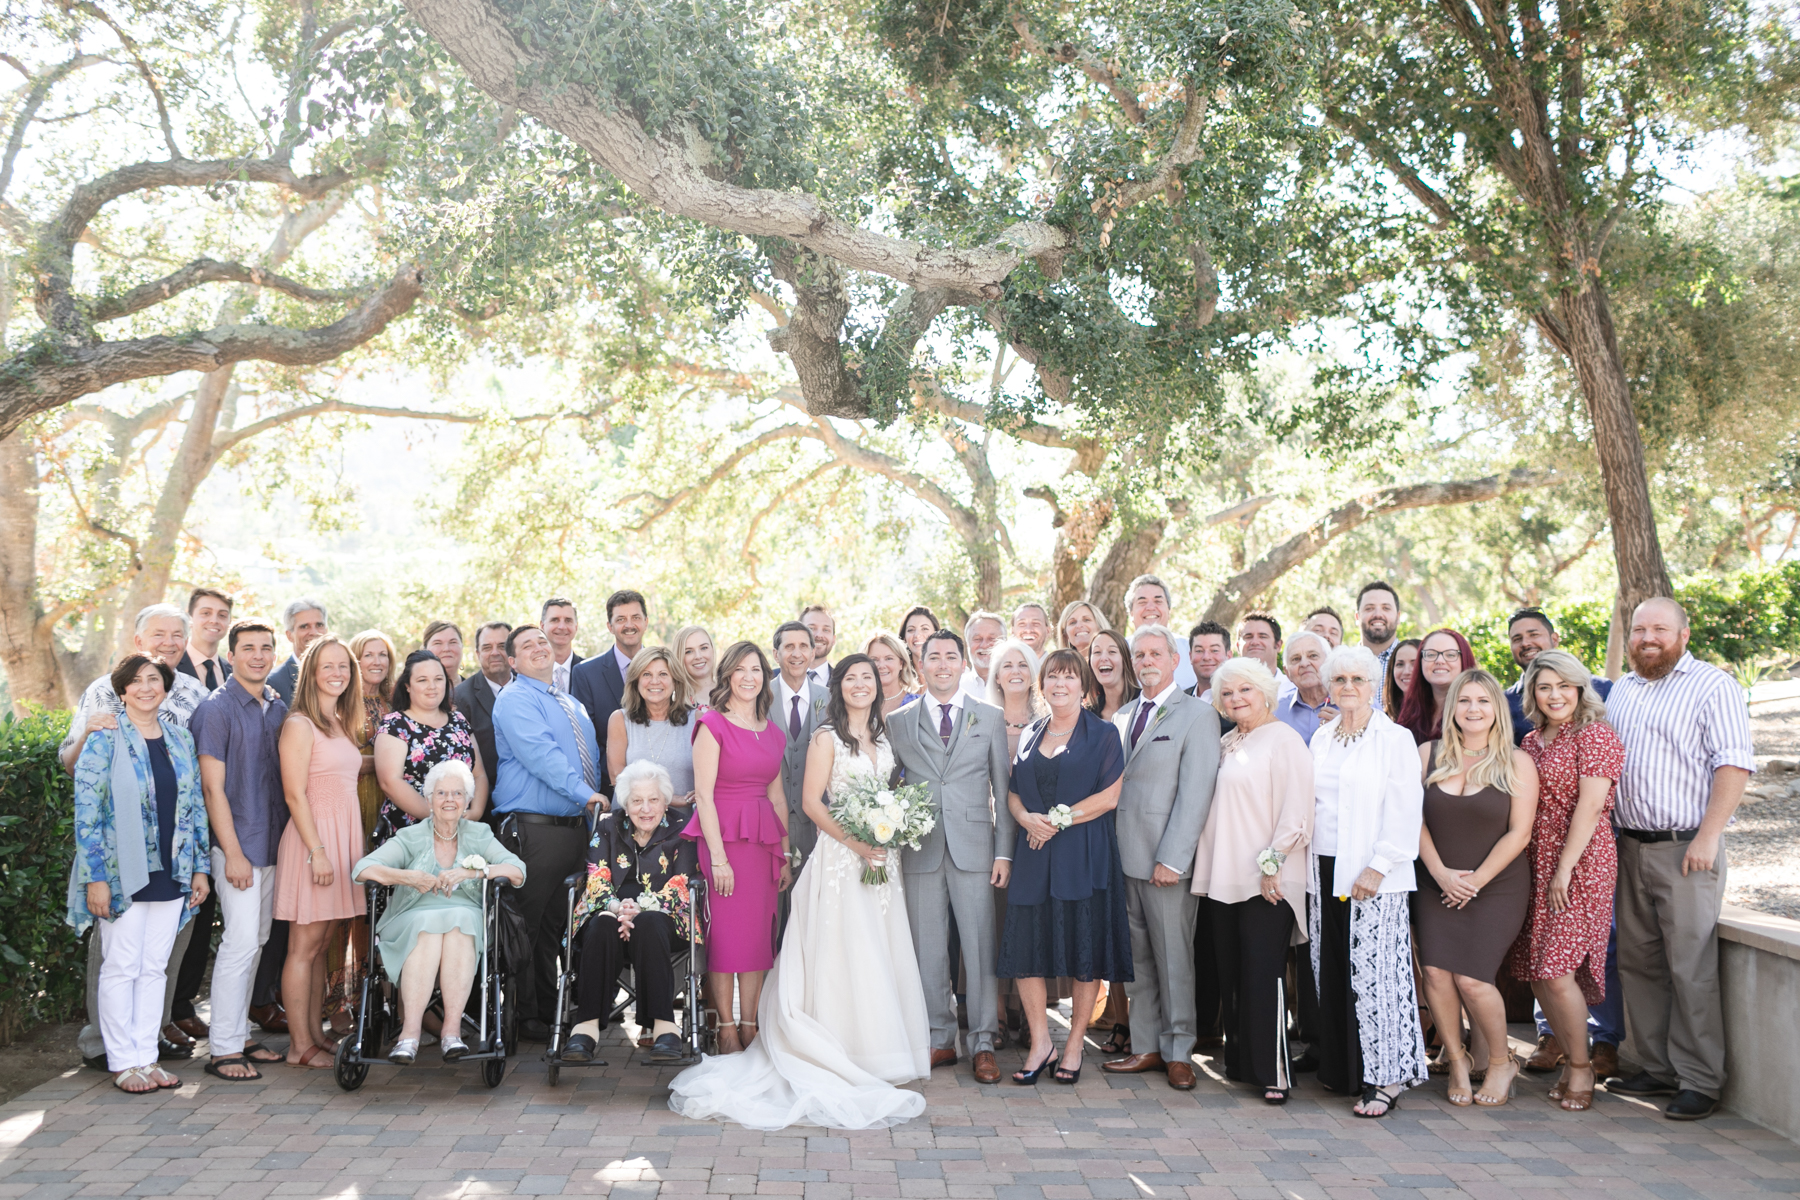 Jordan and Alex's Mt. Woodson Ramona Wedding Great Woodland Photography 8-31-19-20.jpg